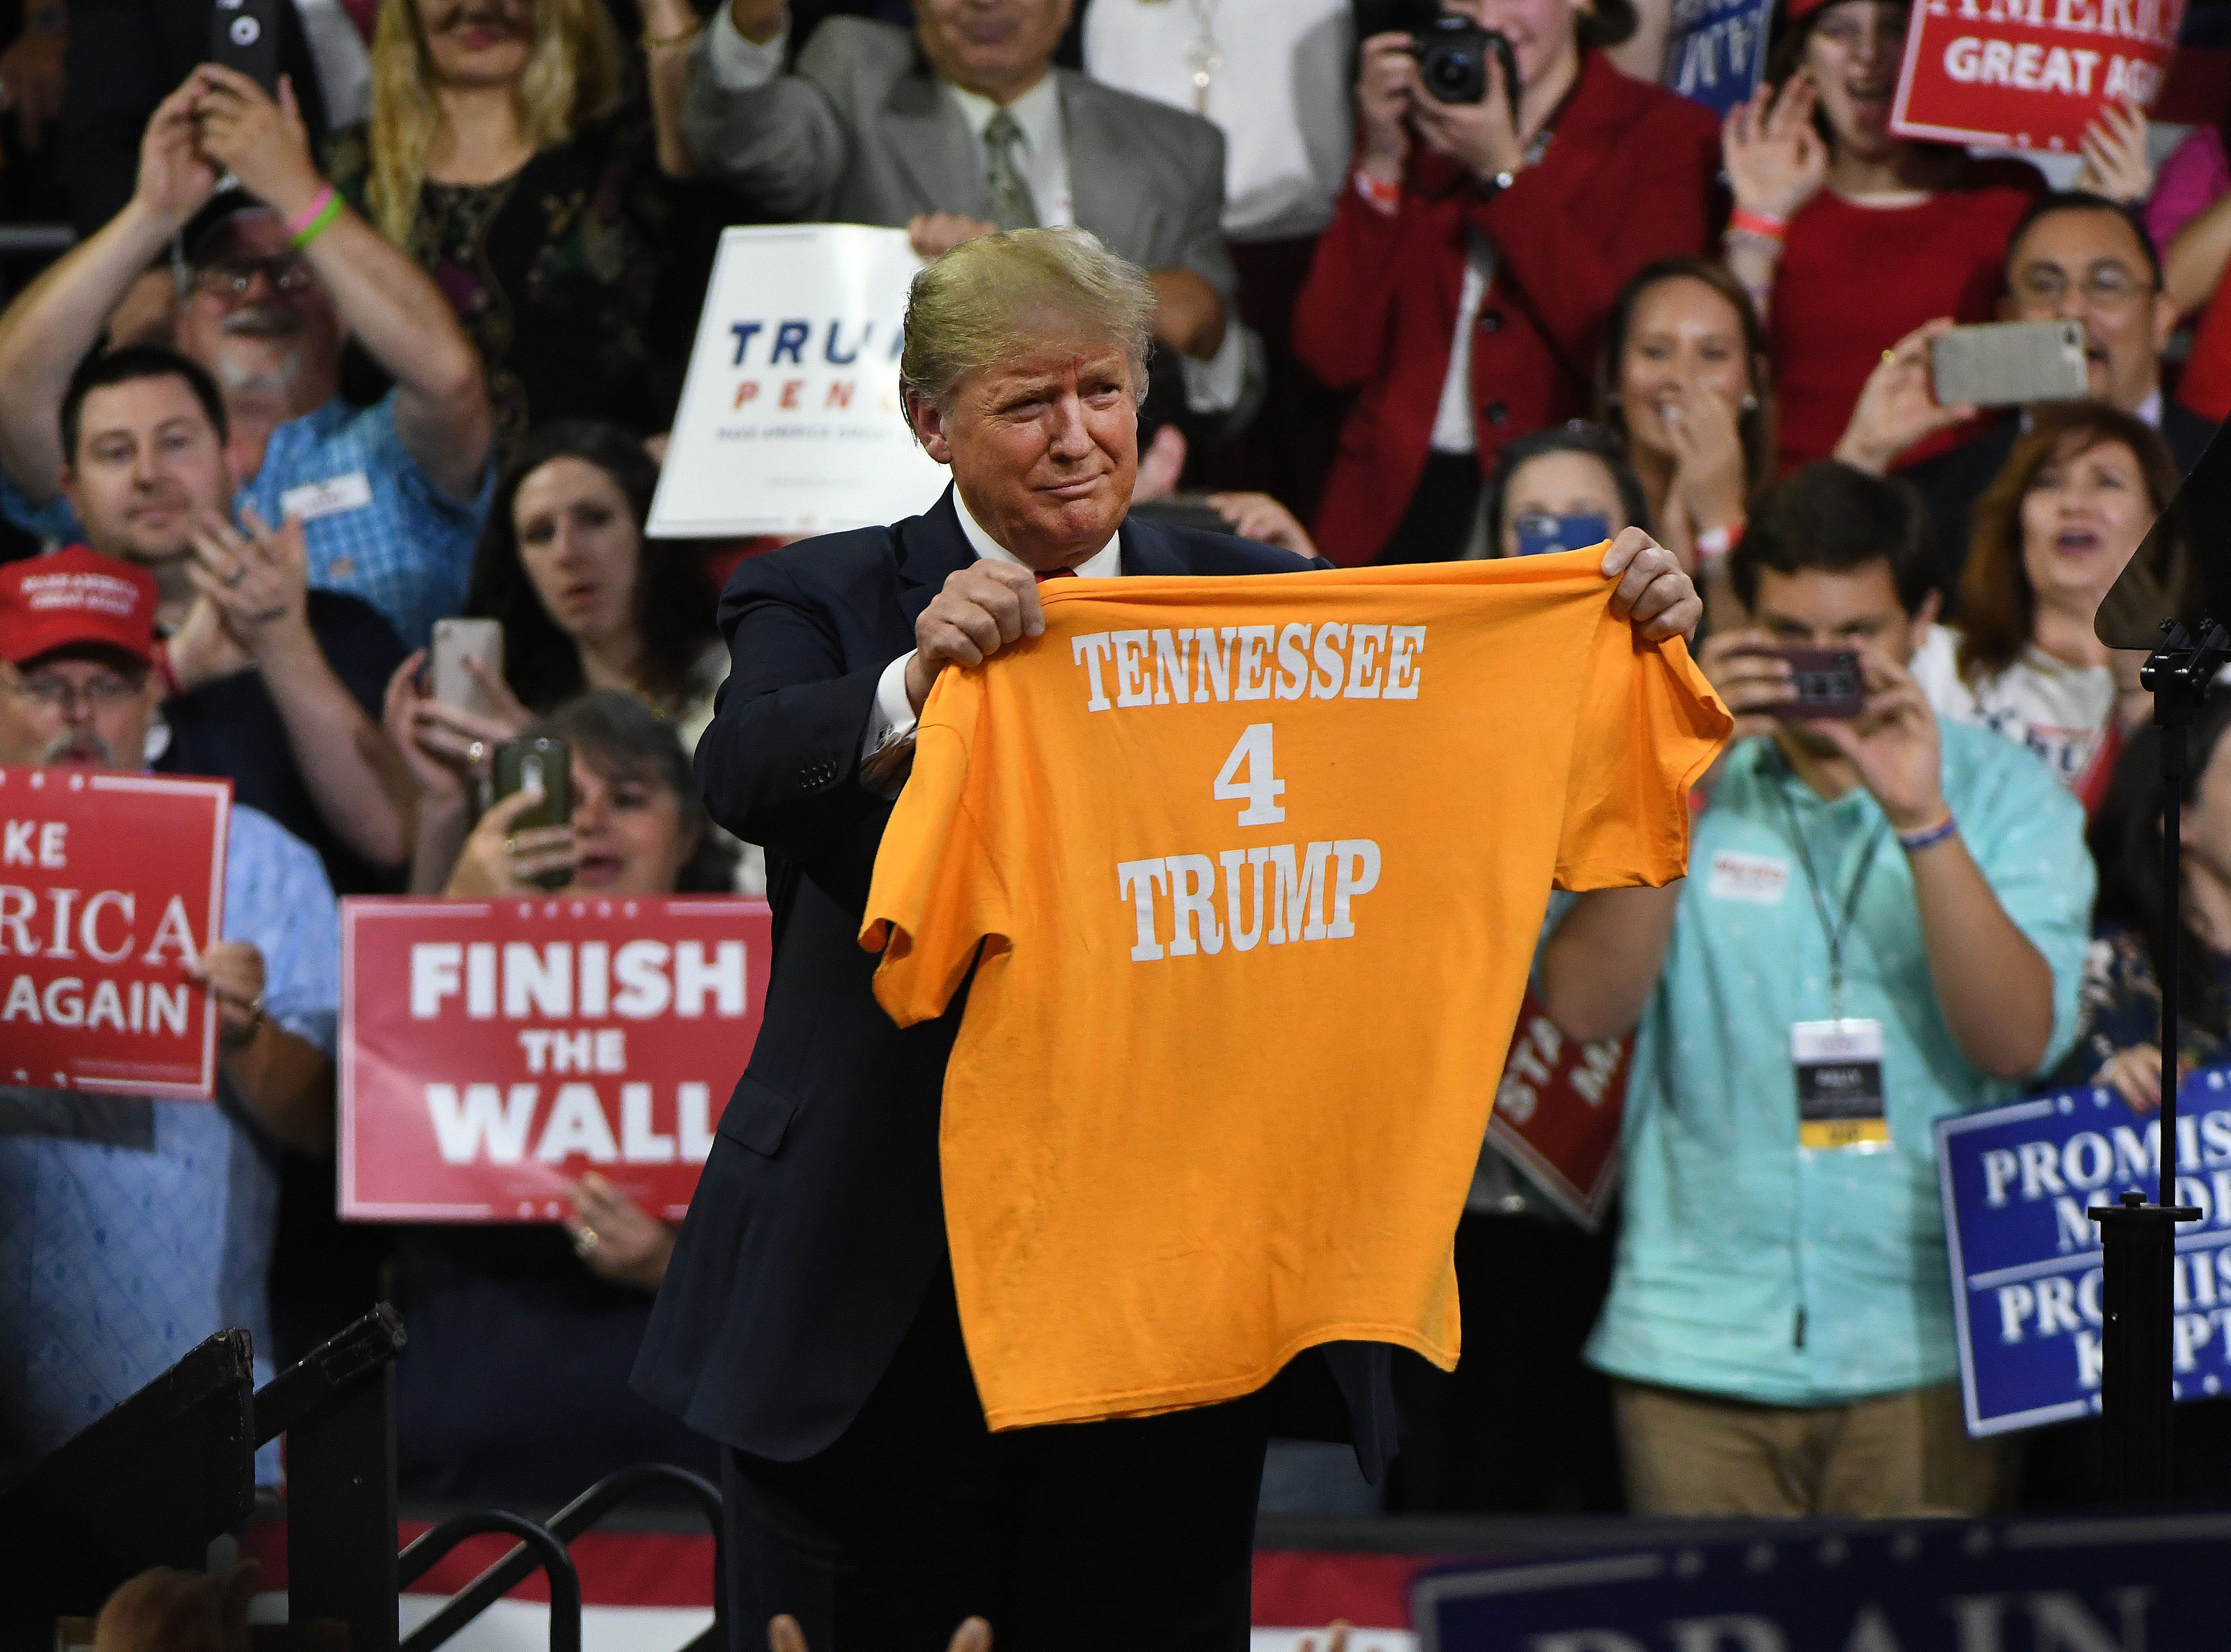 President Donald Trump holds up a Tennessee 4 Trump shirt during the Make America Great Again Rally for Marsha Blackburn at Freedom Hall on Monday, October 1, 2018 in Johnson City.